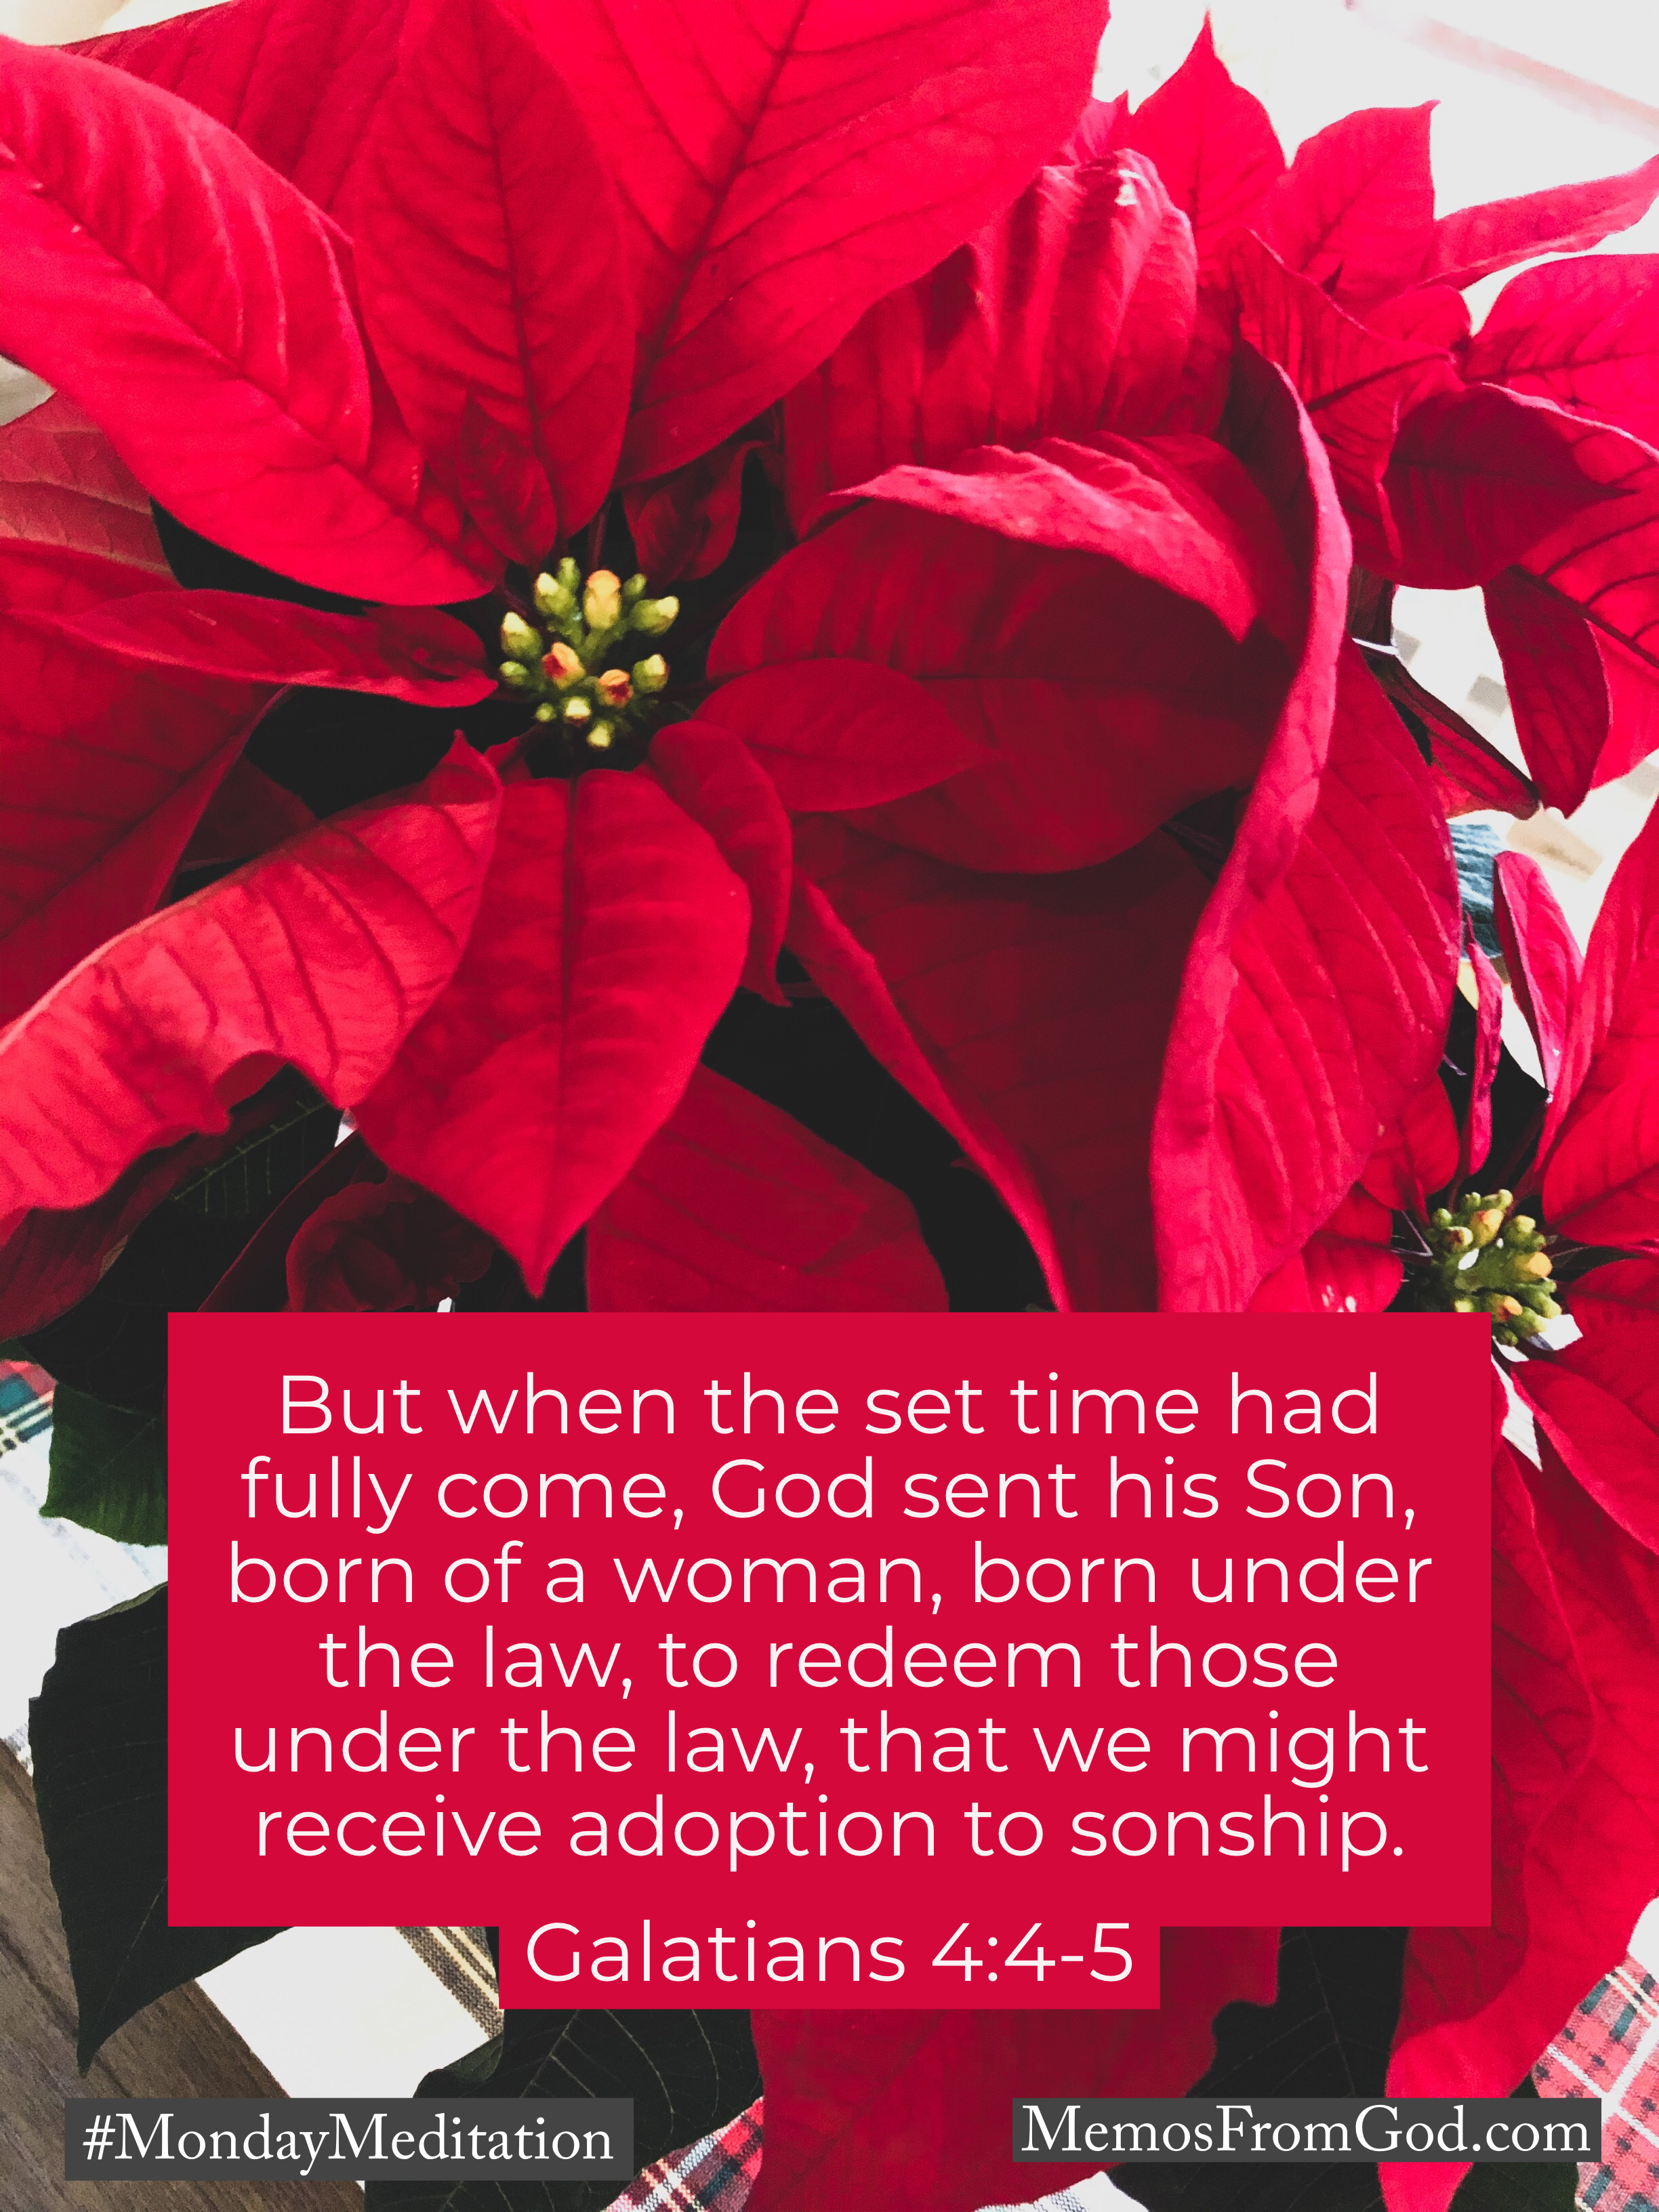 A bright red poinsettia. Caption: But when the set time had fully come, God sent his Son, born of a woman, born under the law, to redeem those under the law, that we might receive adoption to sonship. Galatians 4:4-5